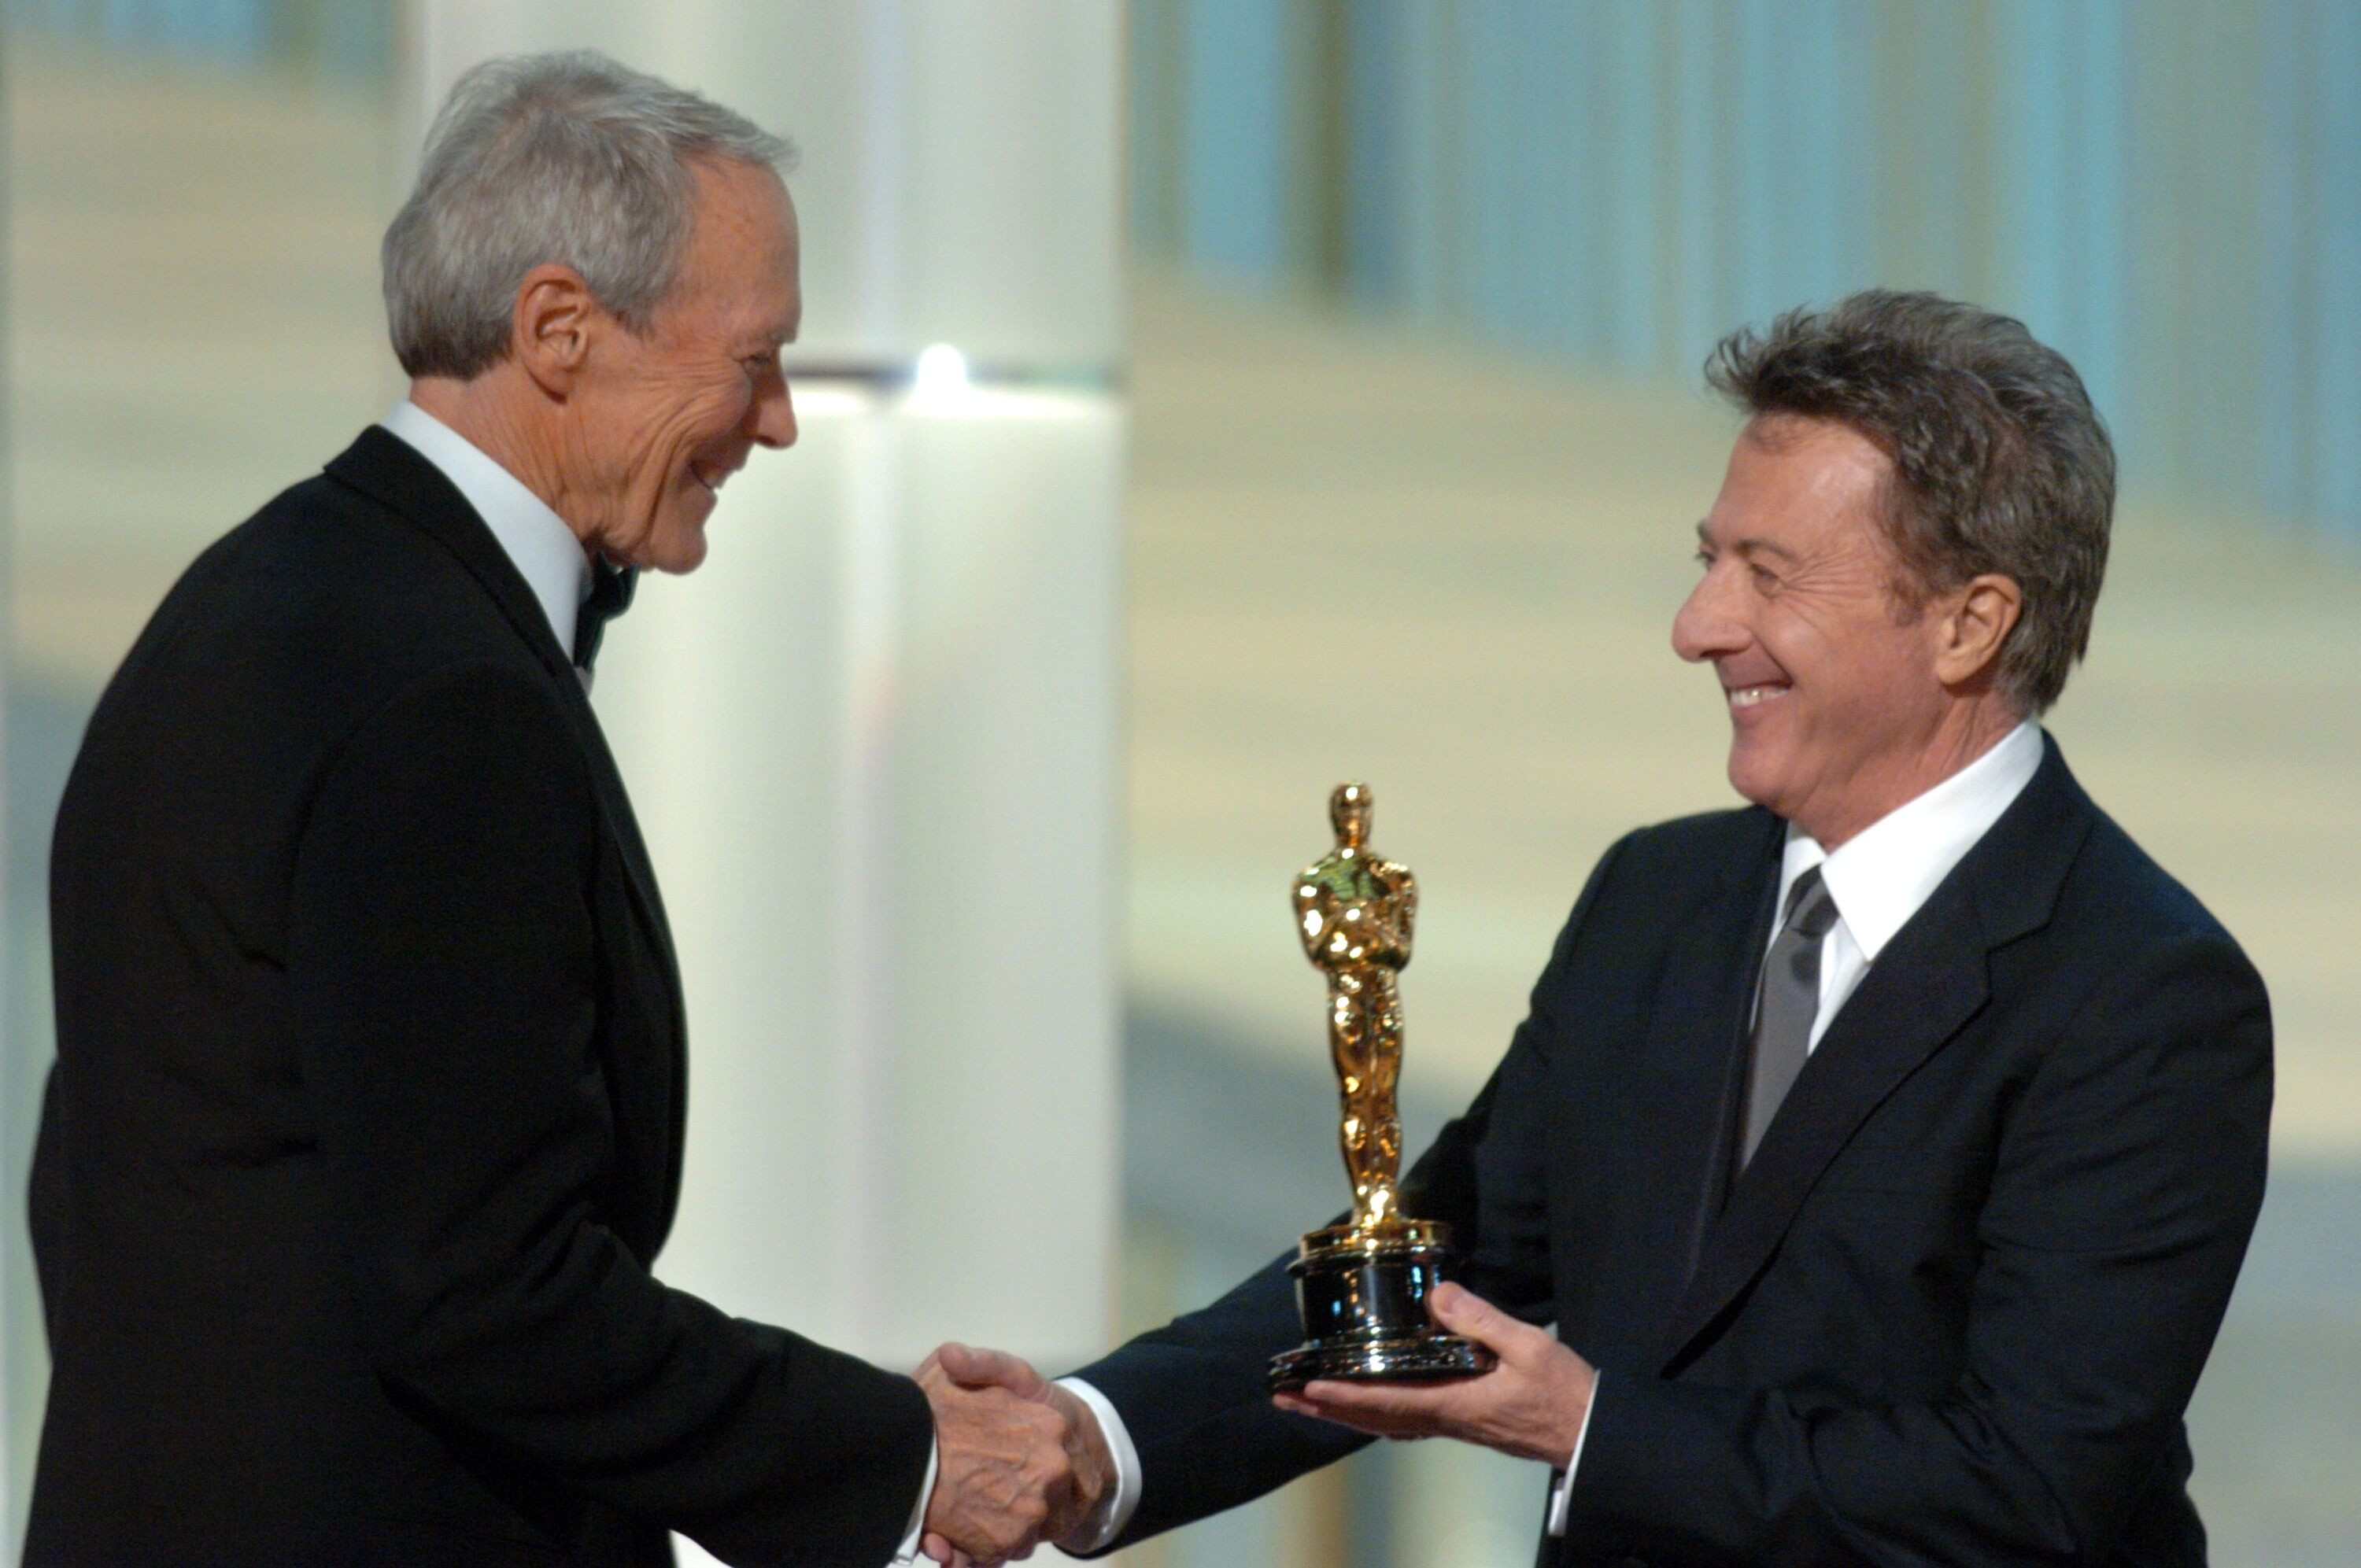 Clint Eastwood accepts the Academy Award for Best Motion Picture from Oscar winner Dustin Hoffman.